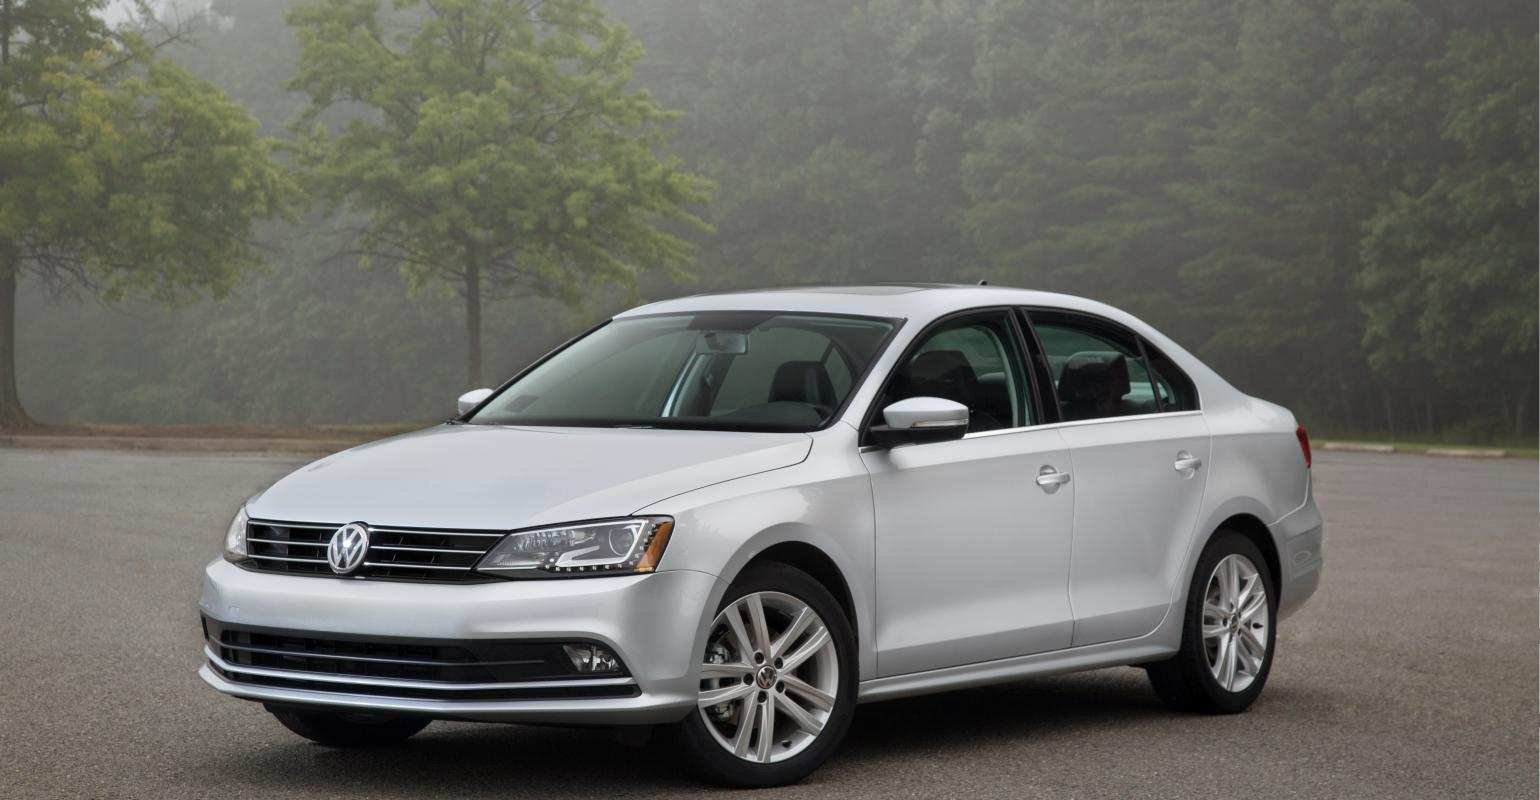 47 Best 2020 Vw Jetta Tdi Reviews